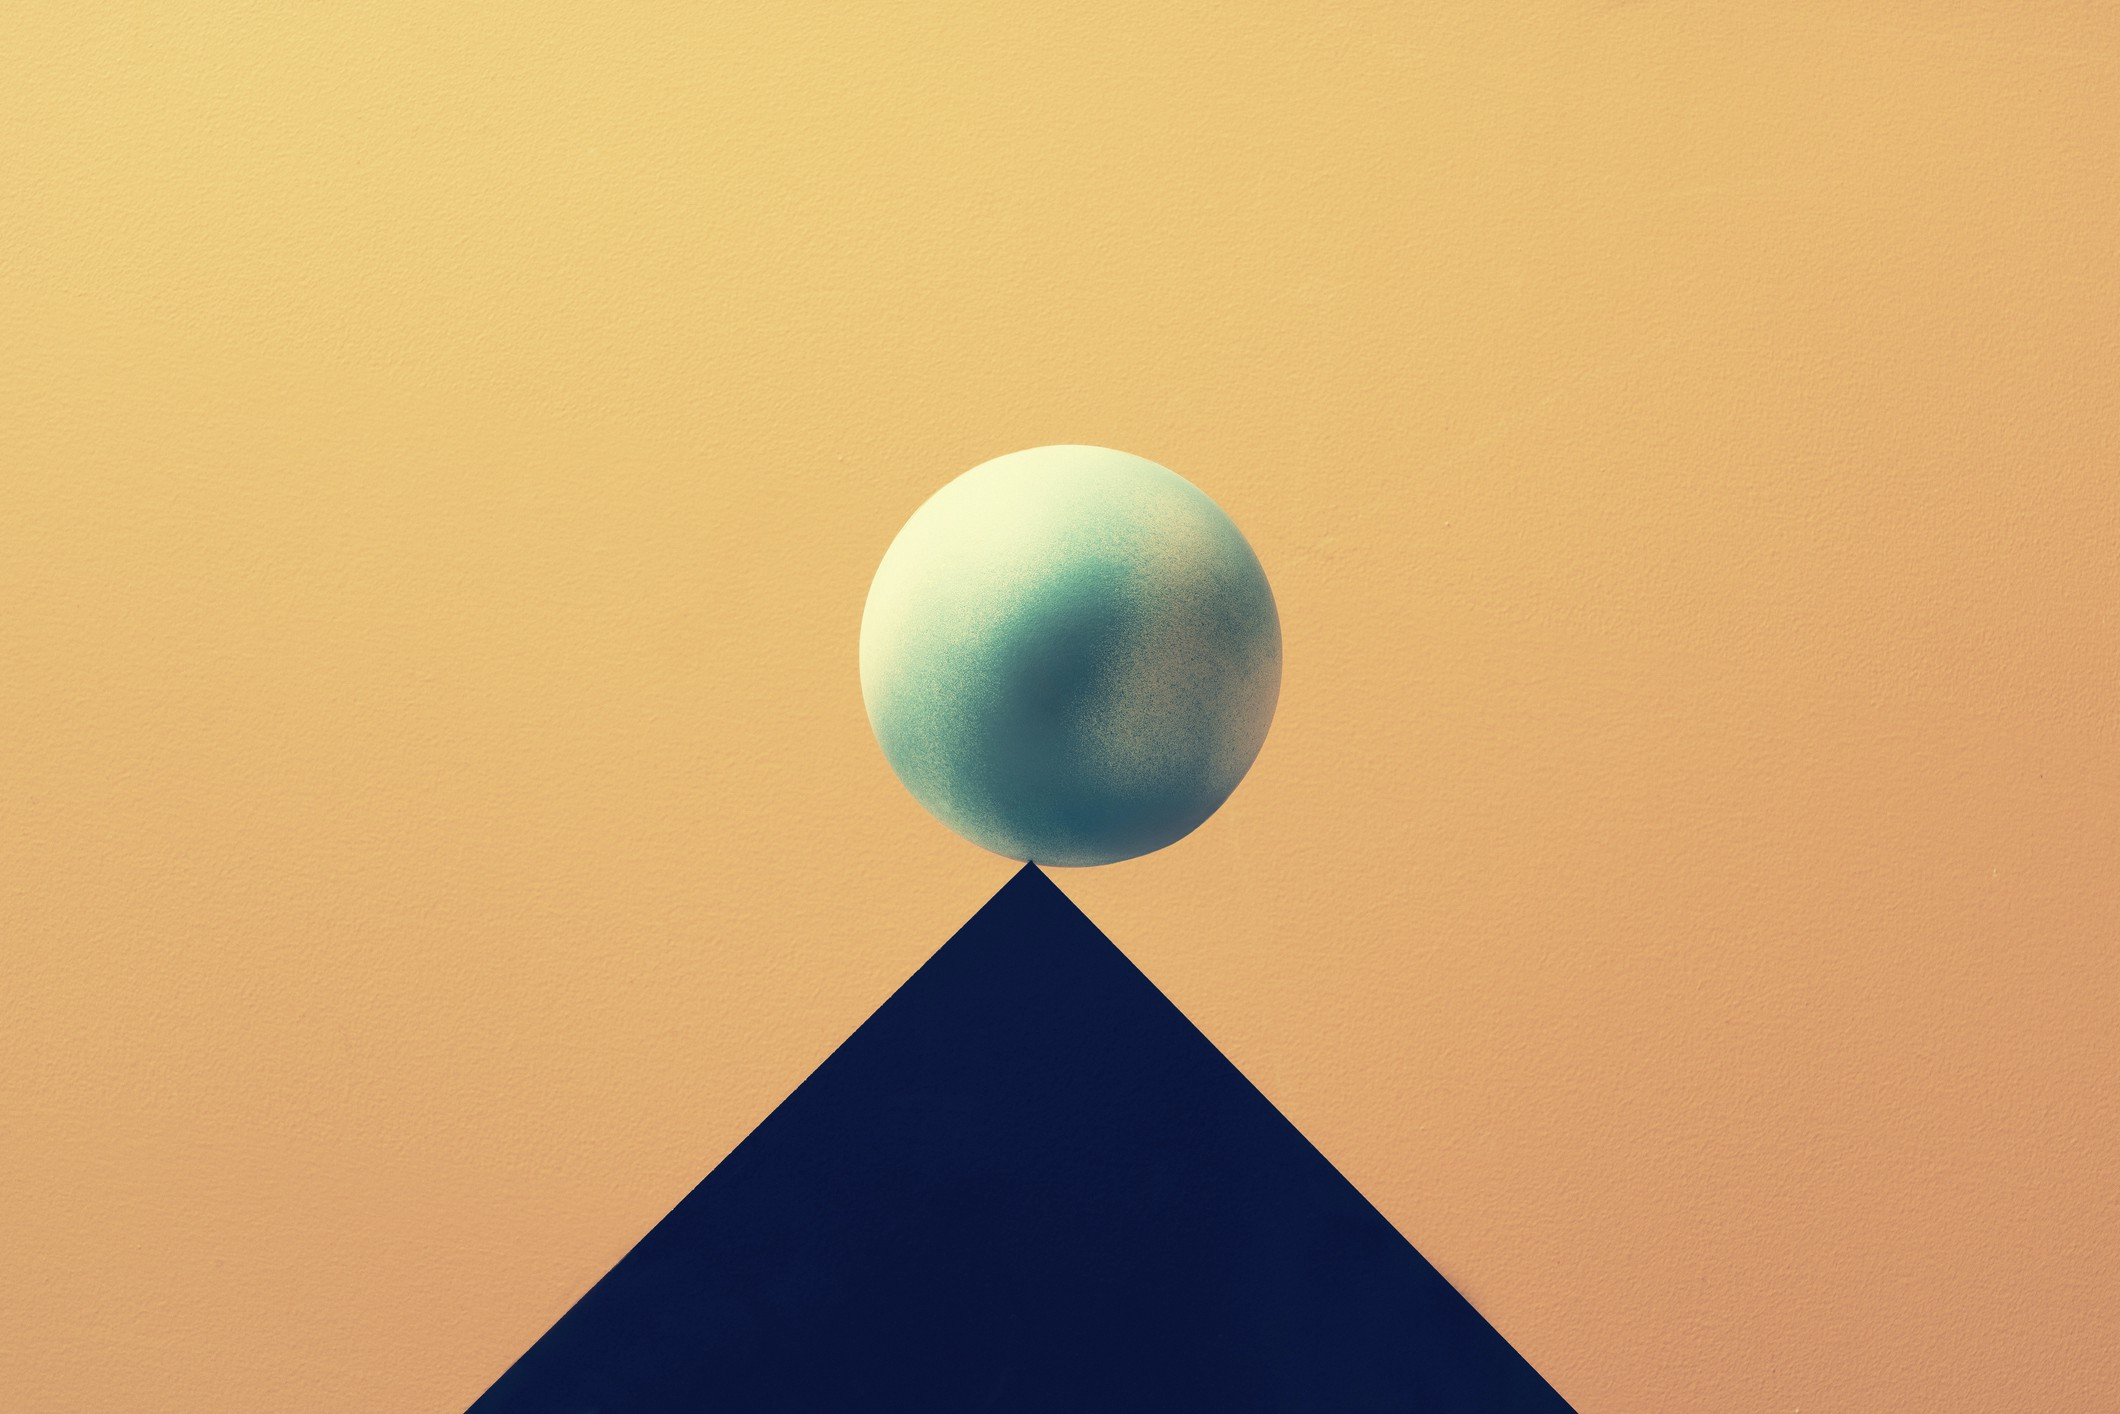 An illustration of the Earth balancing on a triangular peak, tilting toward one side